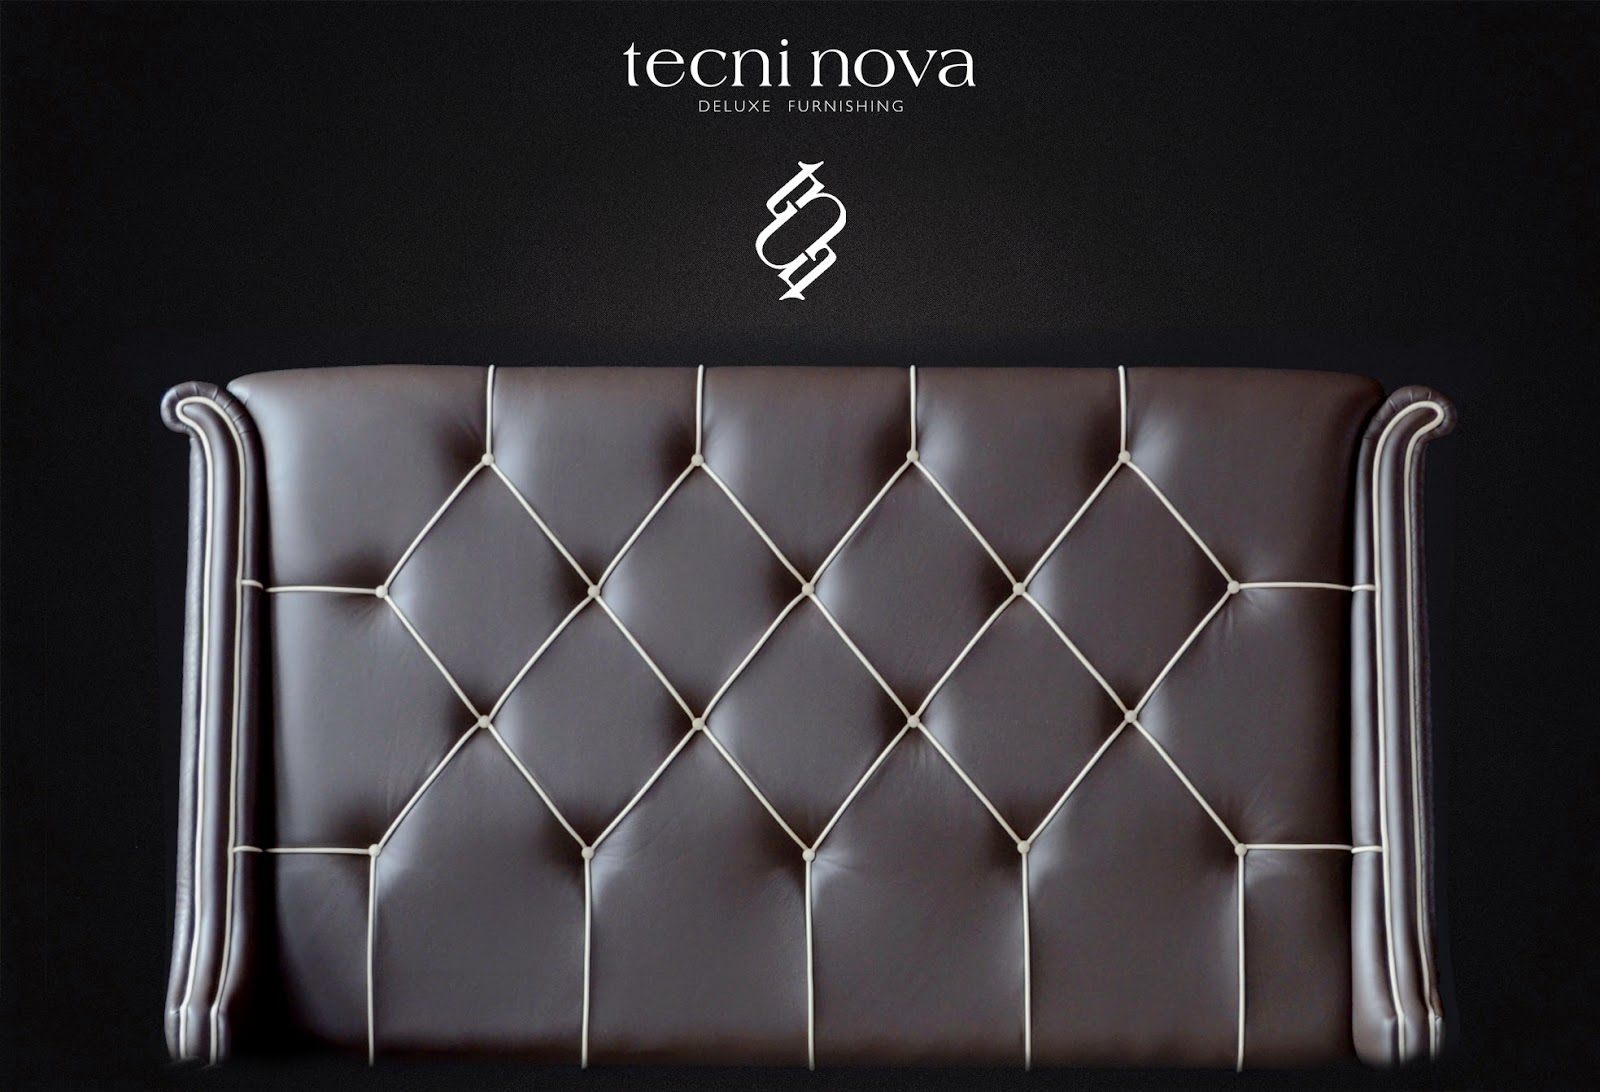 tecninova-deluxe-furnishing-luxury-furniture-bedroom-master-headboard-capitone-leather-lujo-muebles-chester-piel-tapizado